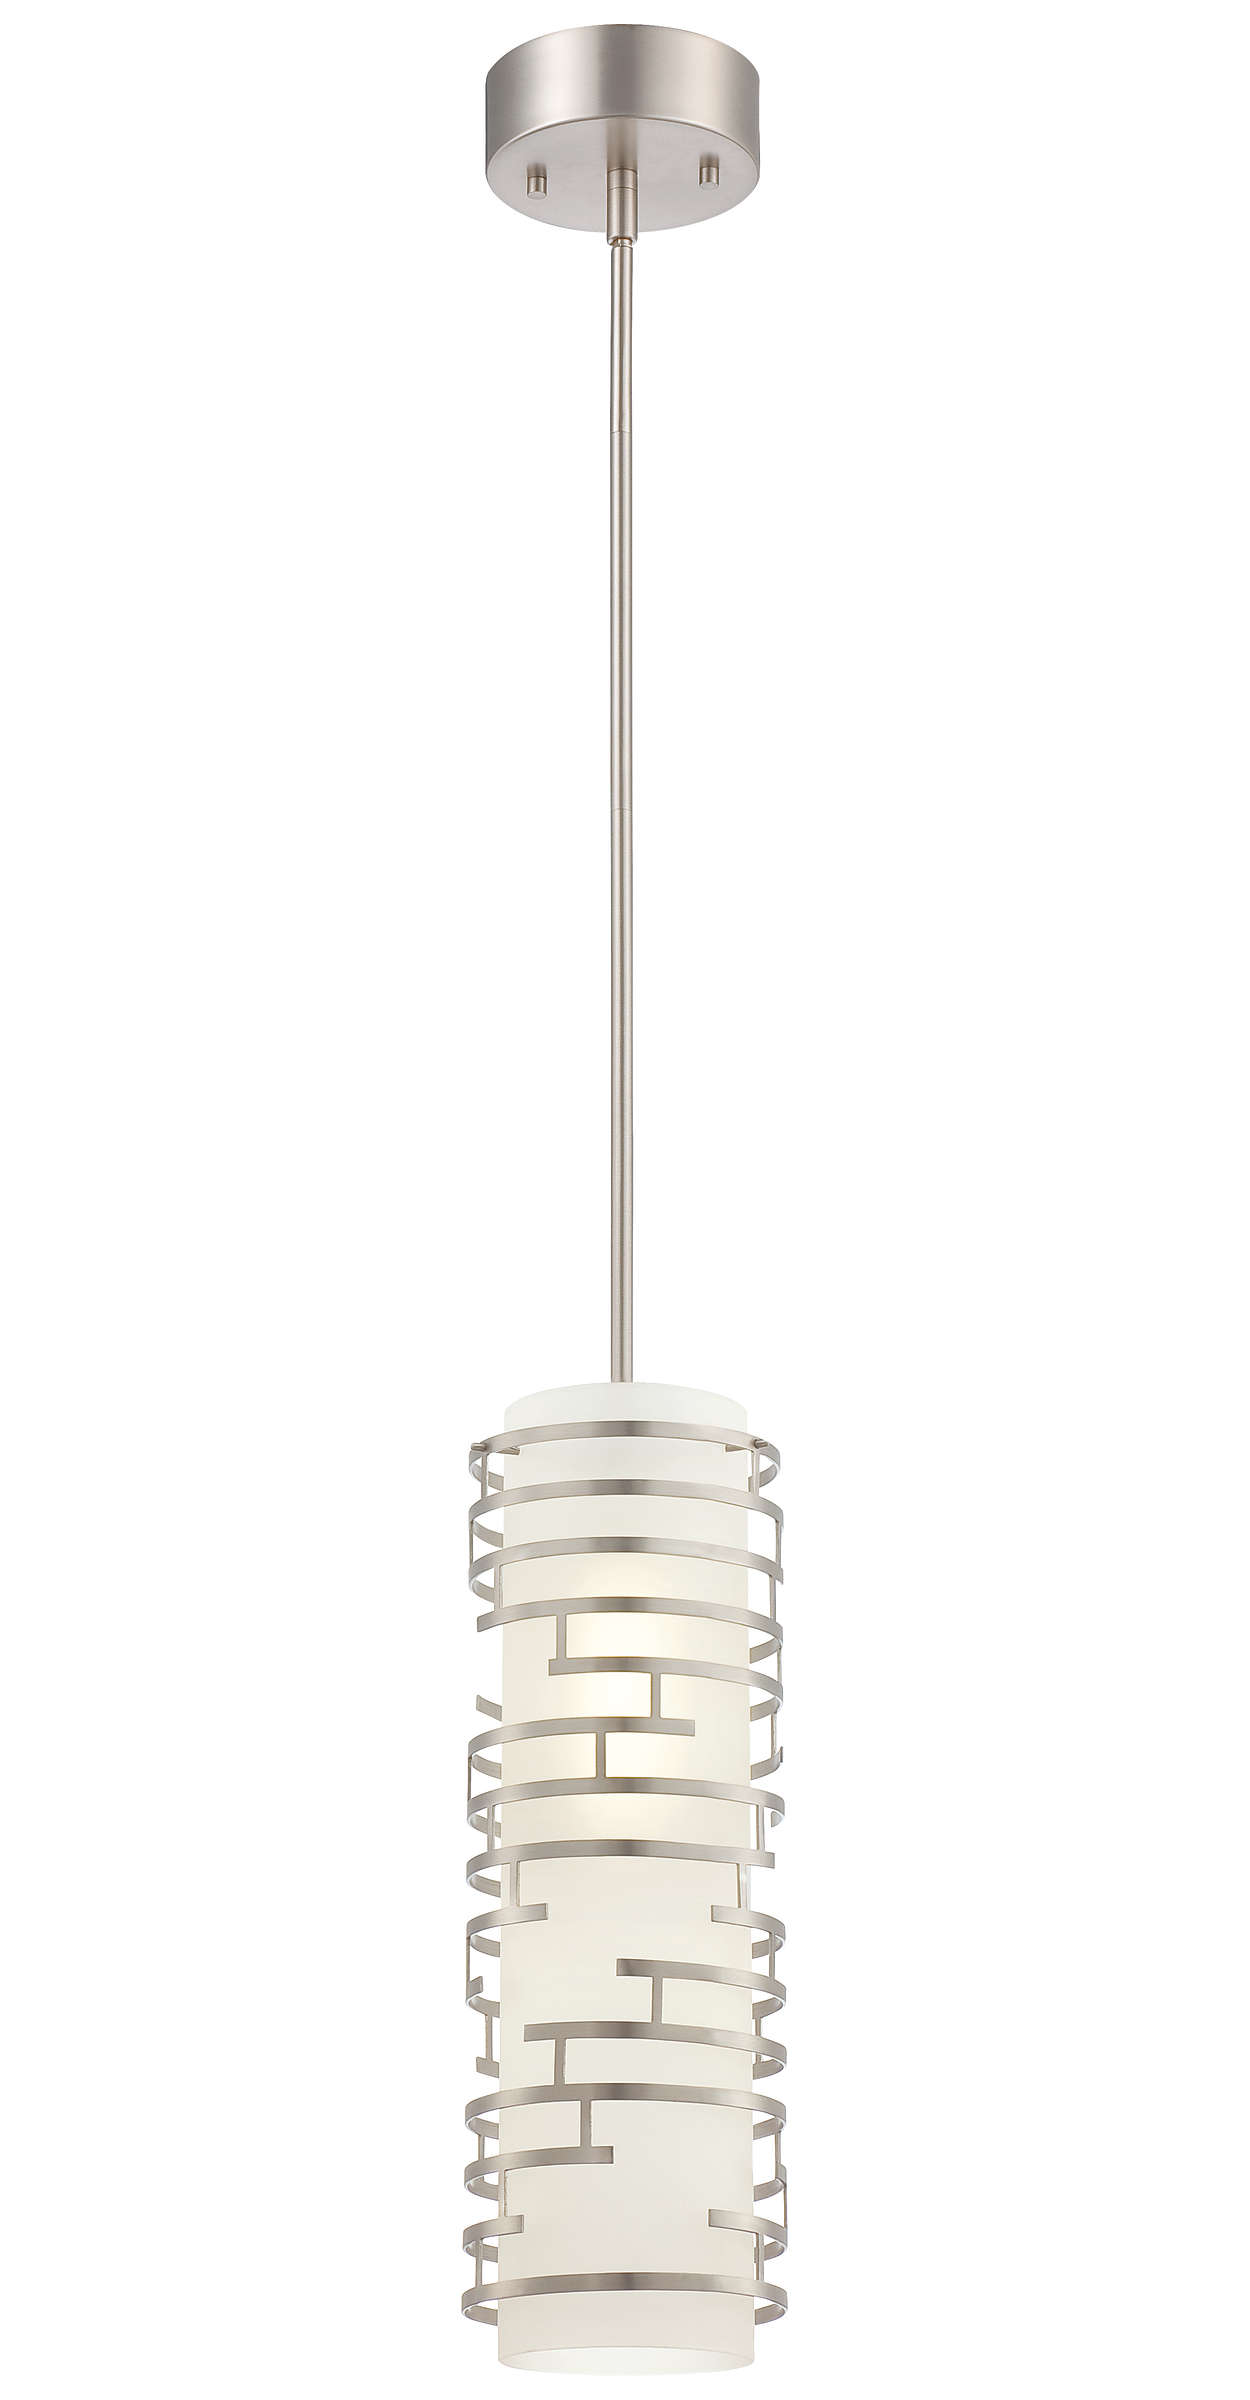 Labyrinth 1-light Pendant in Satin Nickel finish